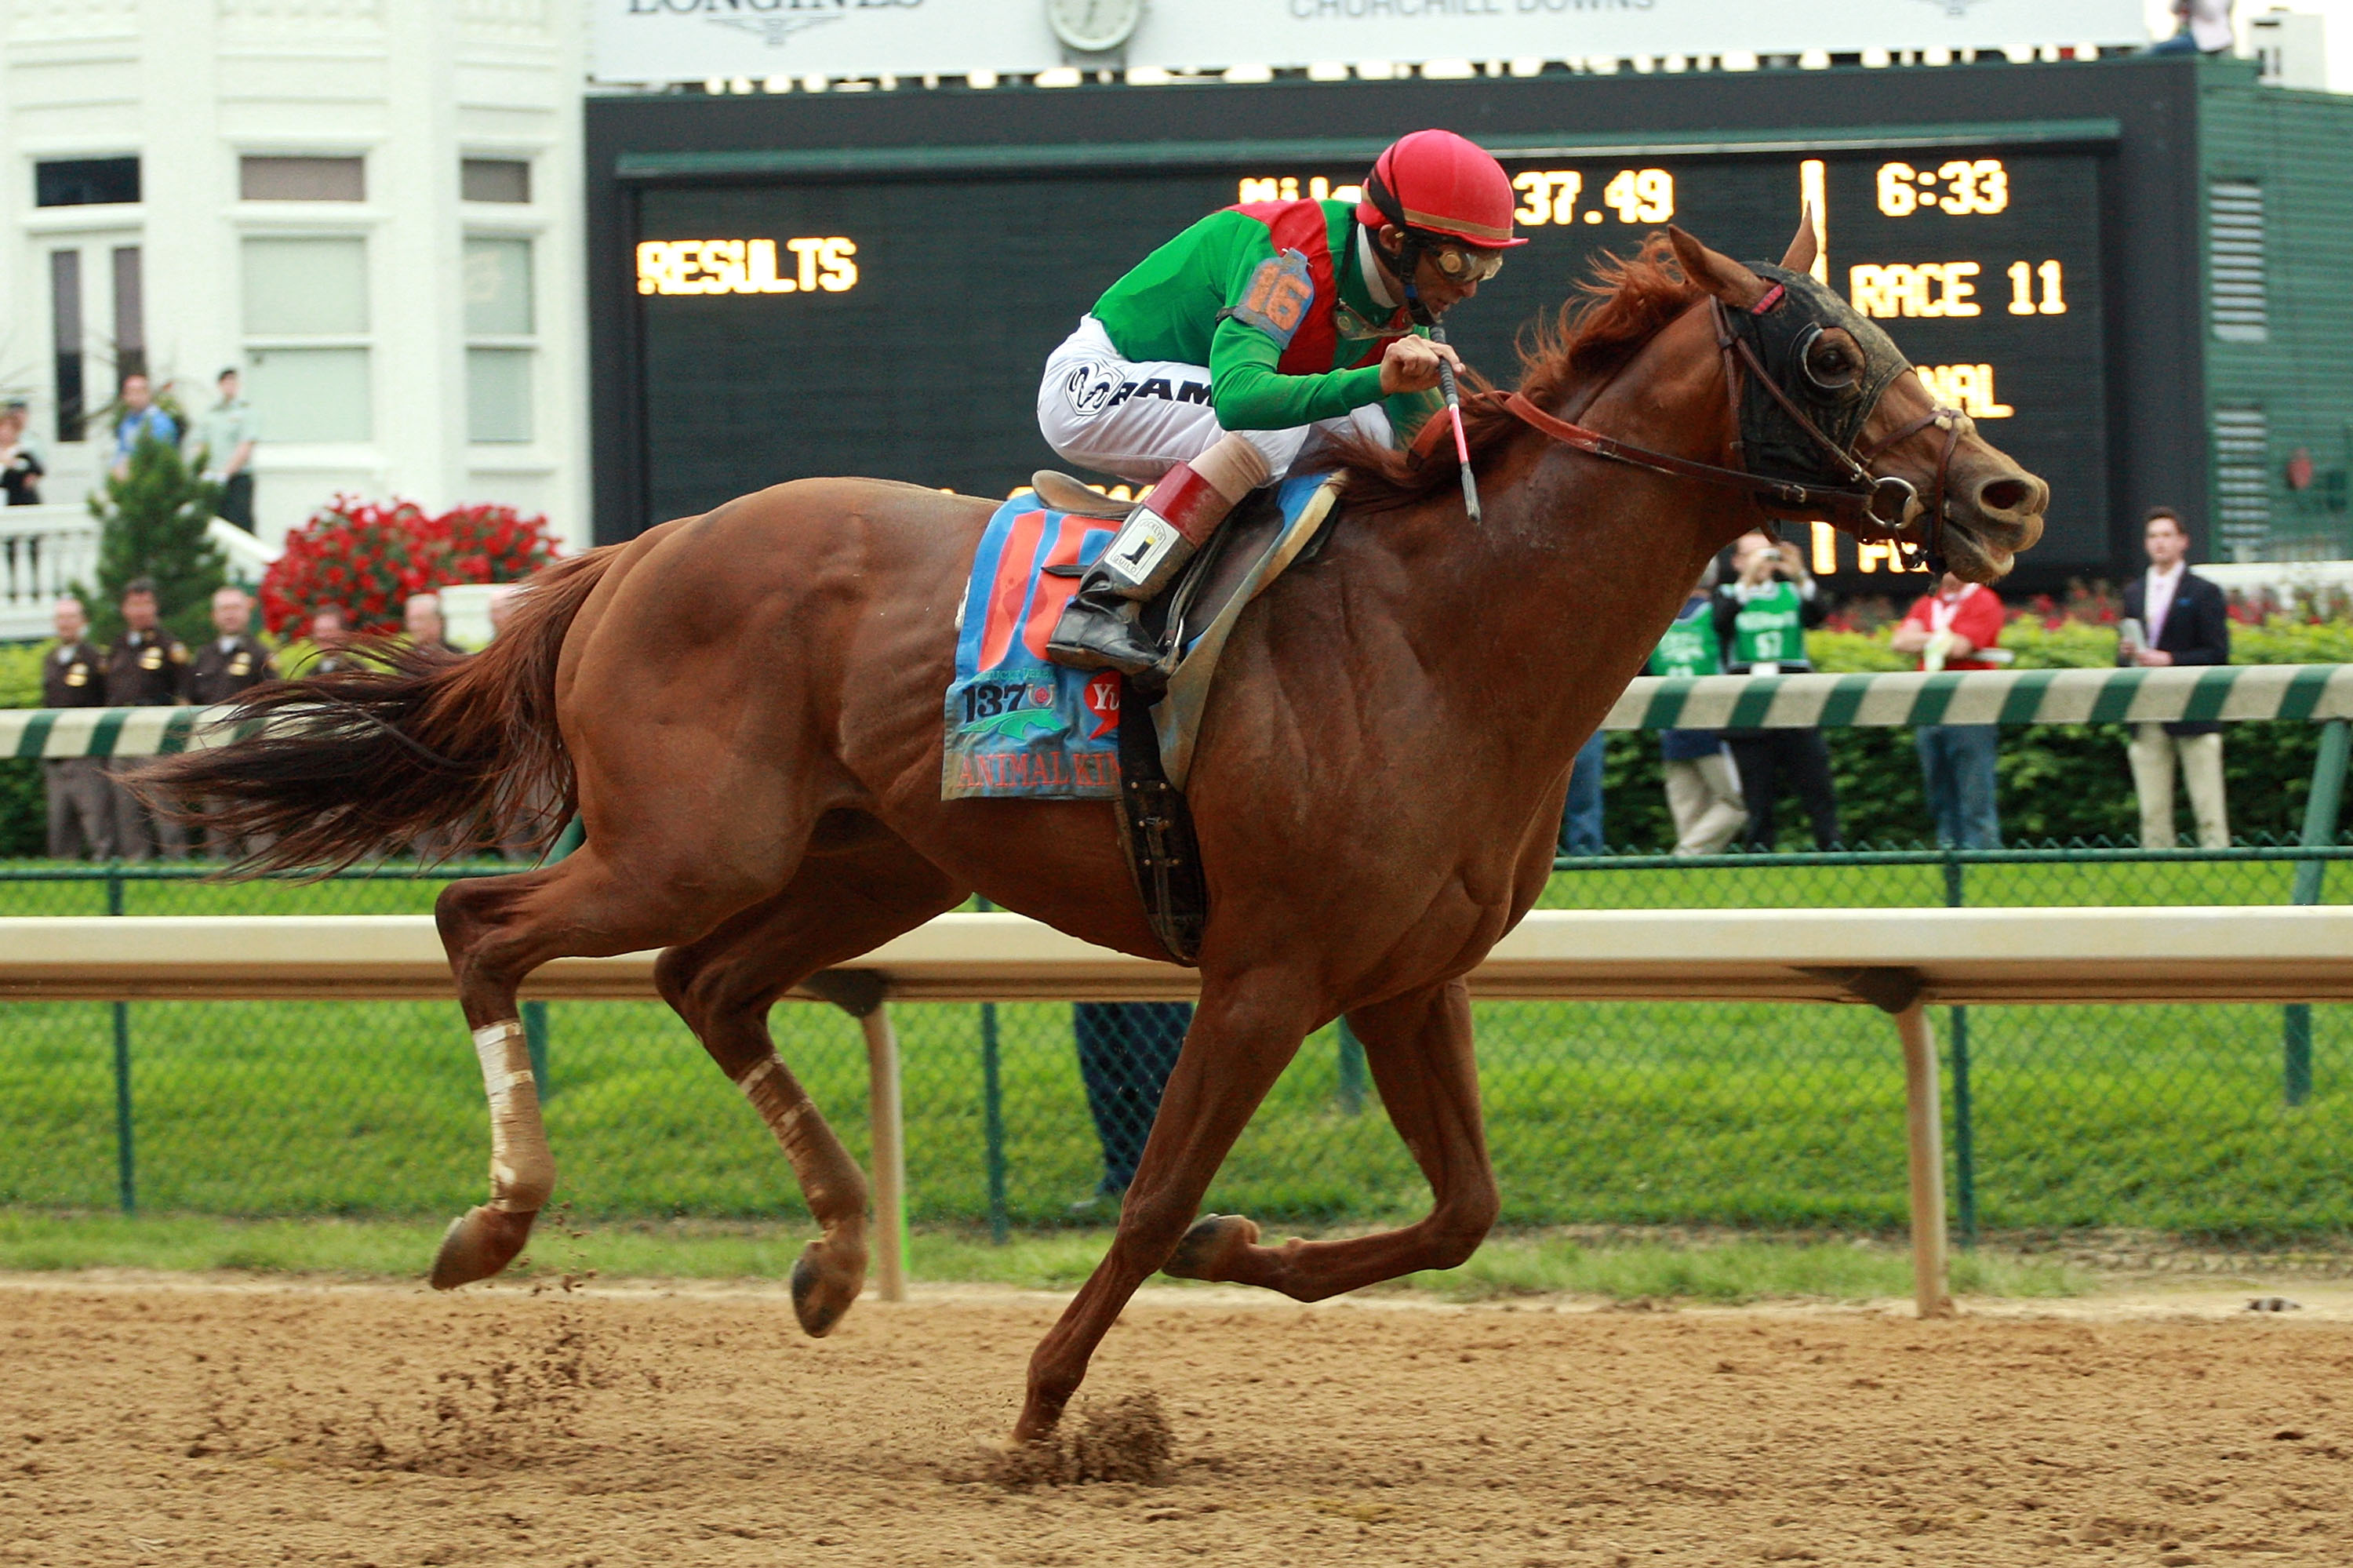 LOUISVILLE, KY - MAY 07:  Jockey John Velazquez, riding Animal Kingdom #16, races towards the finish line to win the 137th Kentucky Derby at Churchill Downs on May 7, 2011 in Louisville, Kentucky.  (Photo by Travis Lindquist/Getty Images)